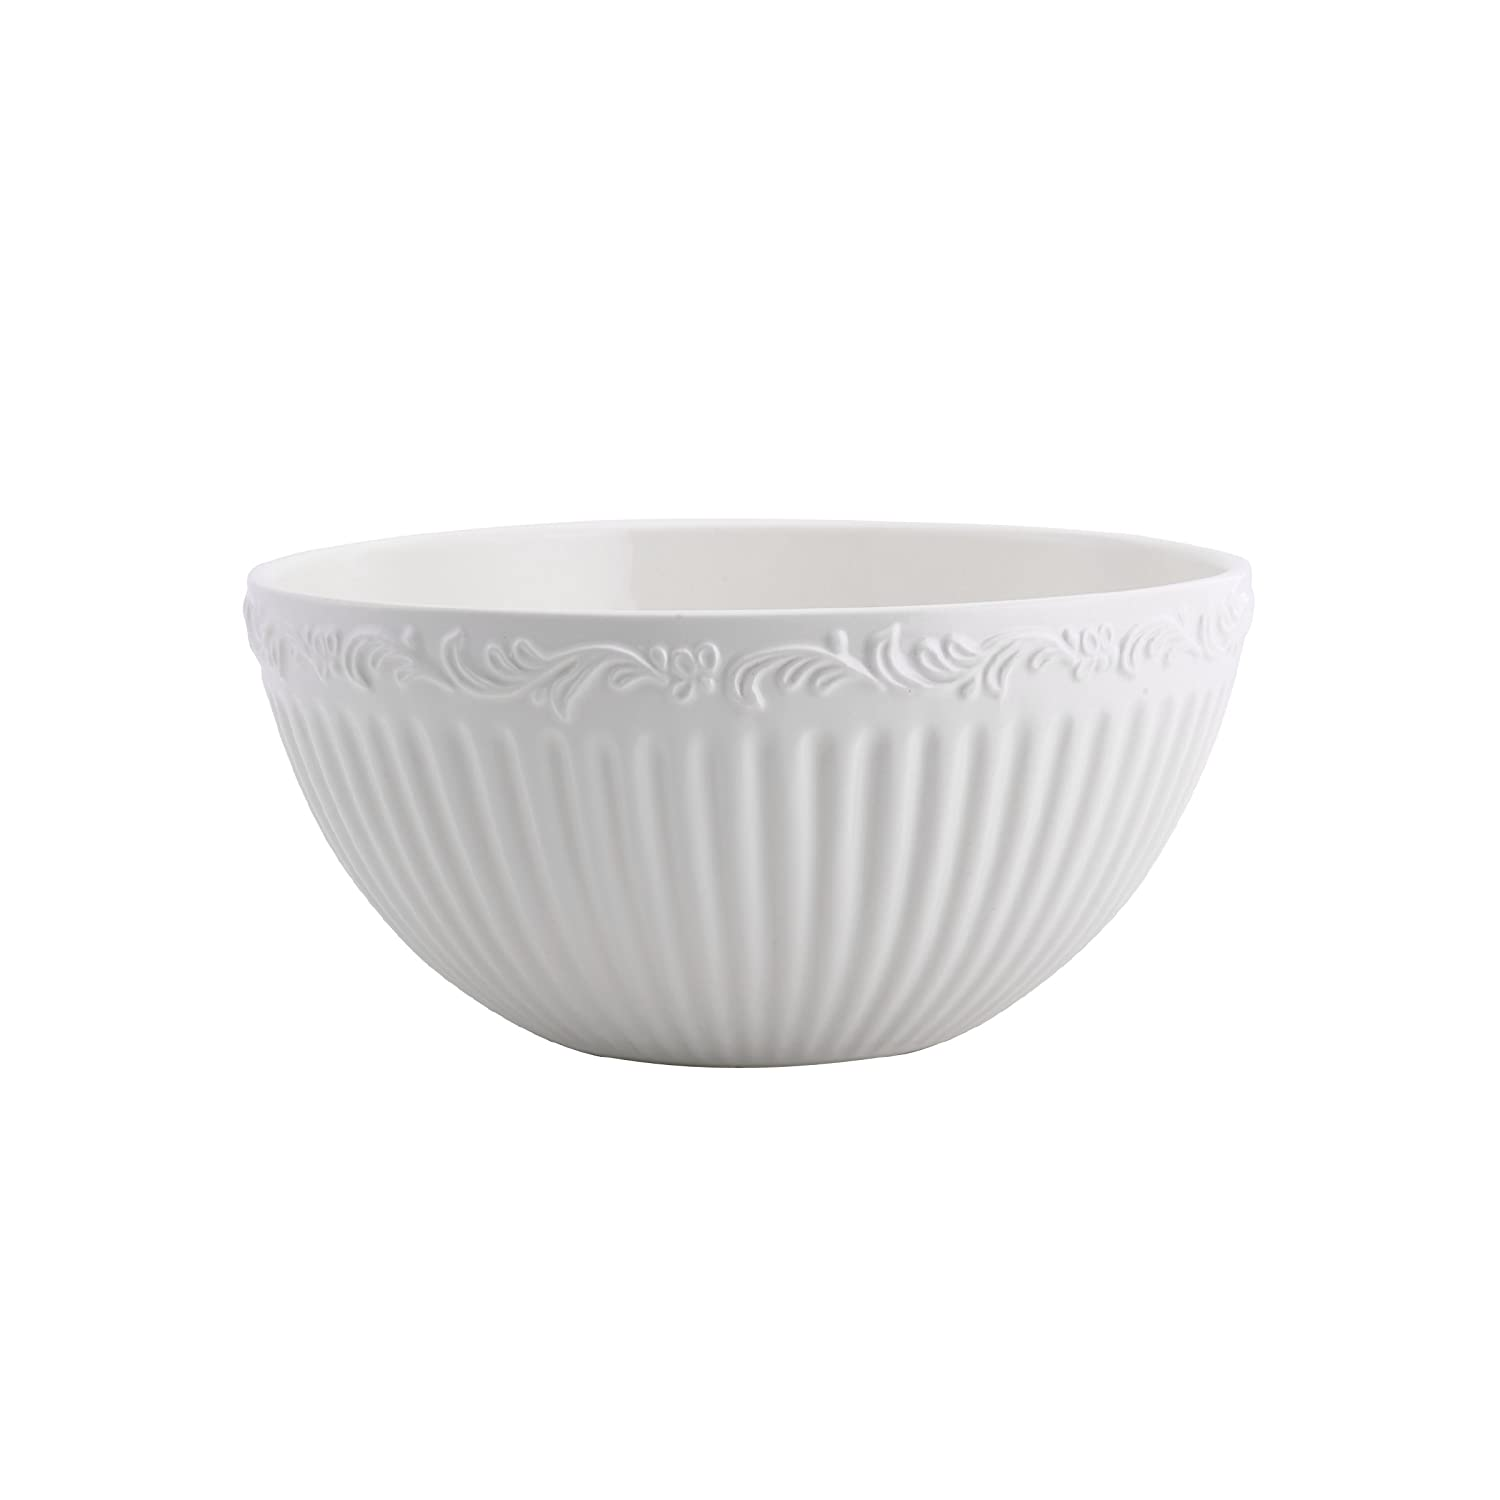 Mikasa Italian Countryside Serving Bowl, 10-Inch 5085633